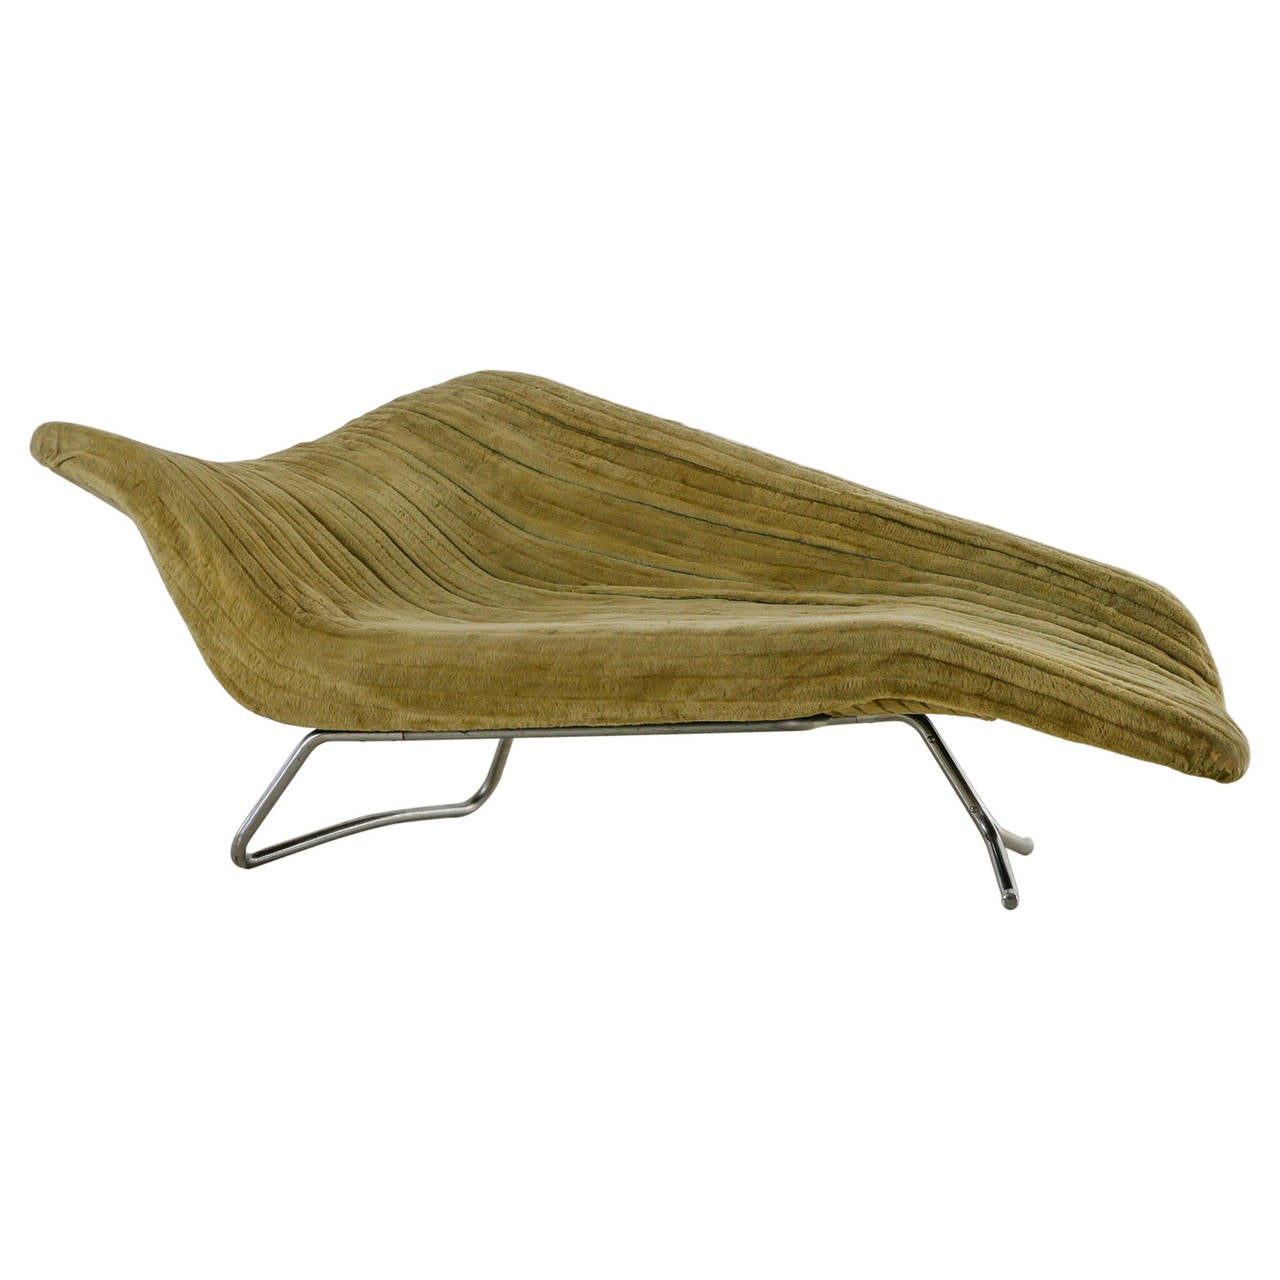 Rare hans hartl sculptural chaise longue denmark 1950s for Chaise longue for sale